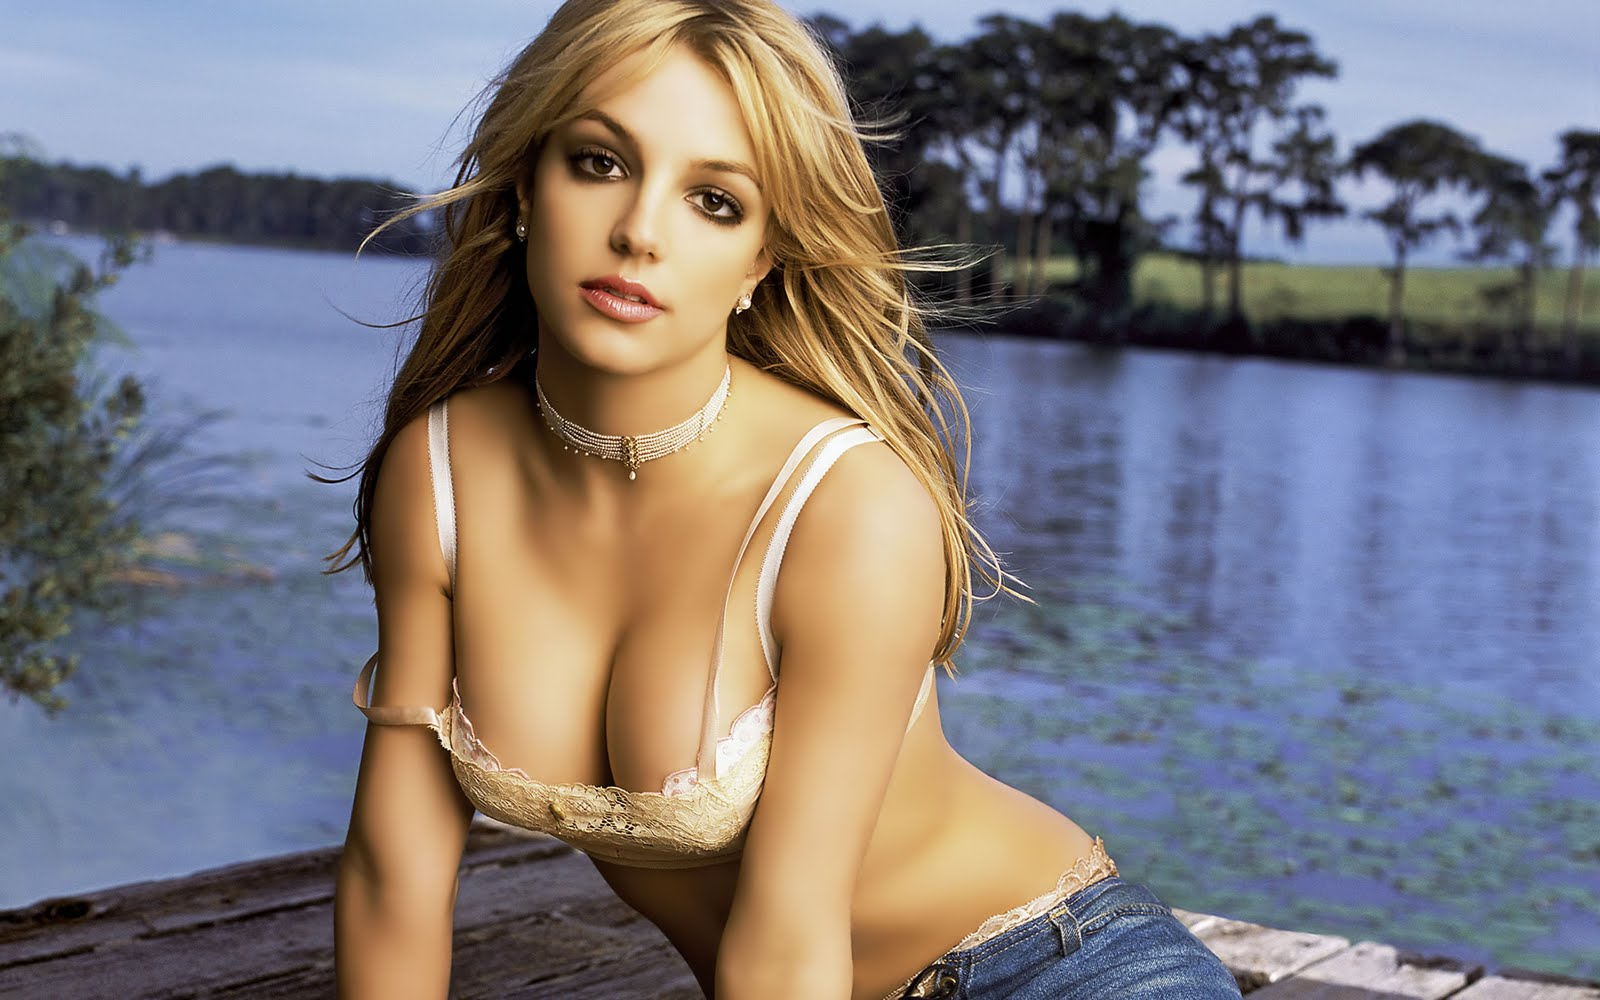 Britney Spears Wallpapers, HD